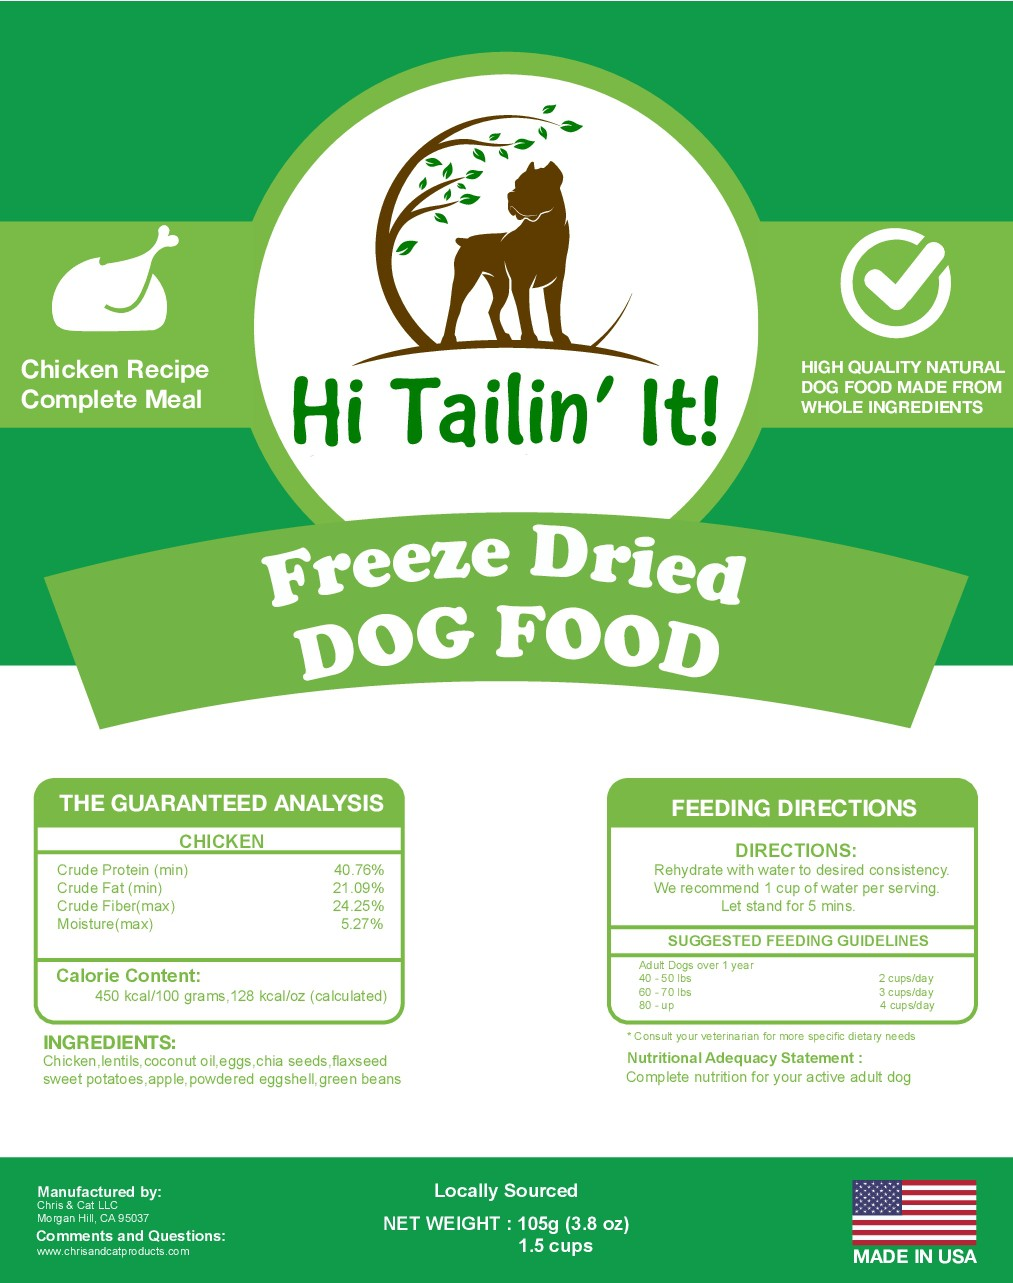 Freeze Dried Dog Food for dogs on the Go!